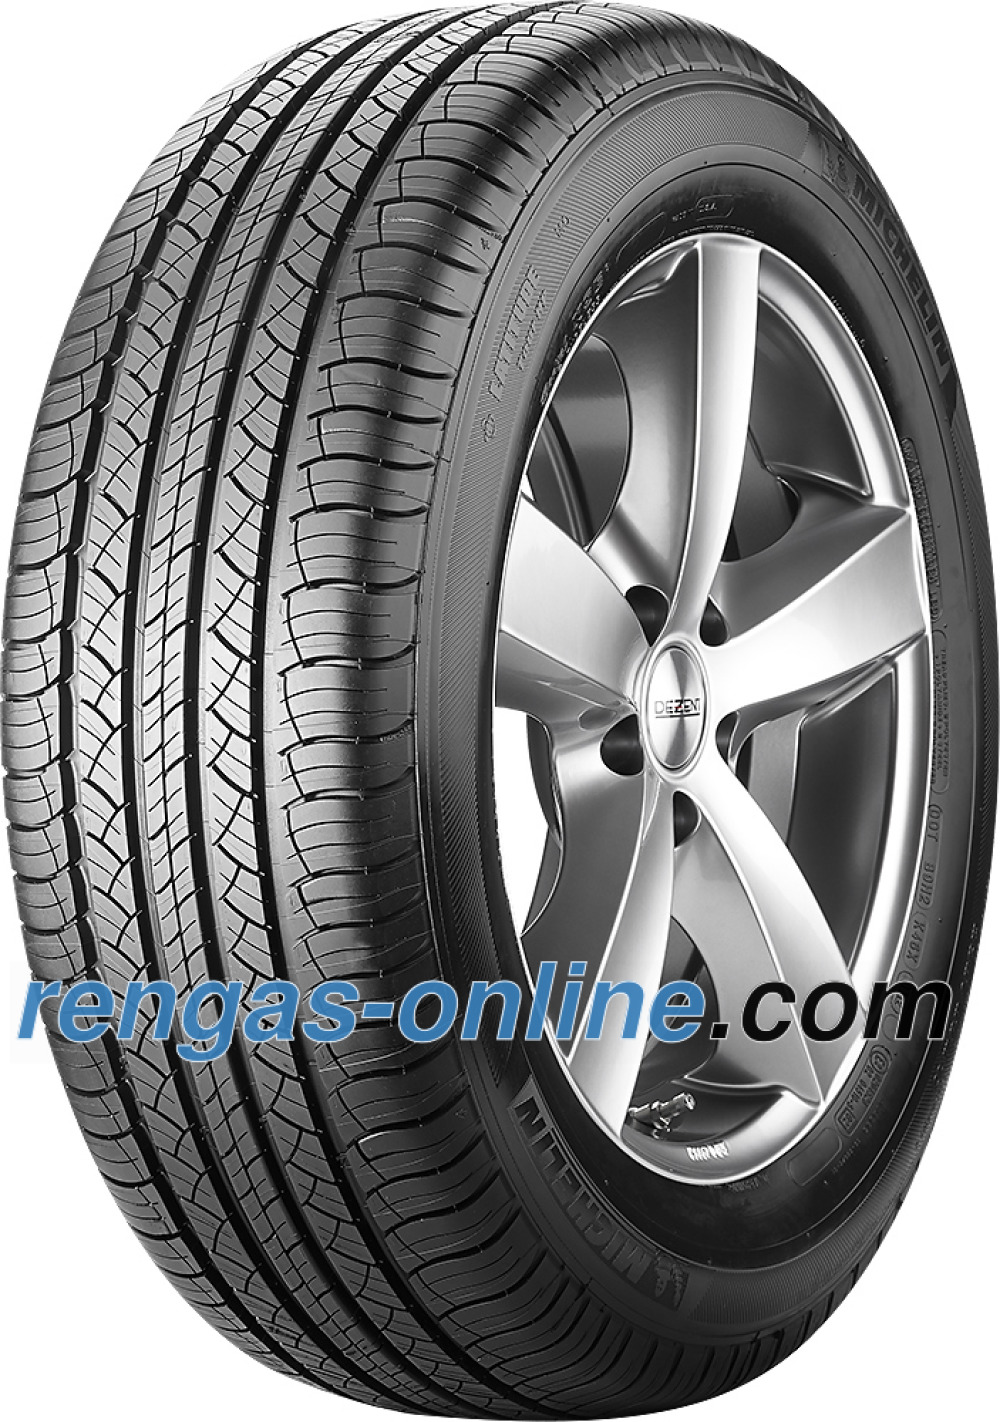 michelin-latitude-tour-hp-p23555-r20-102h